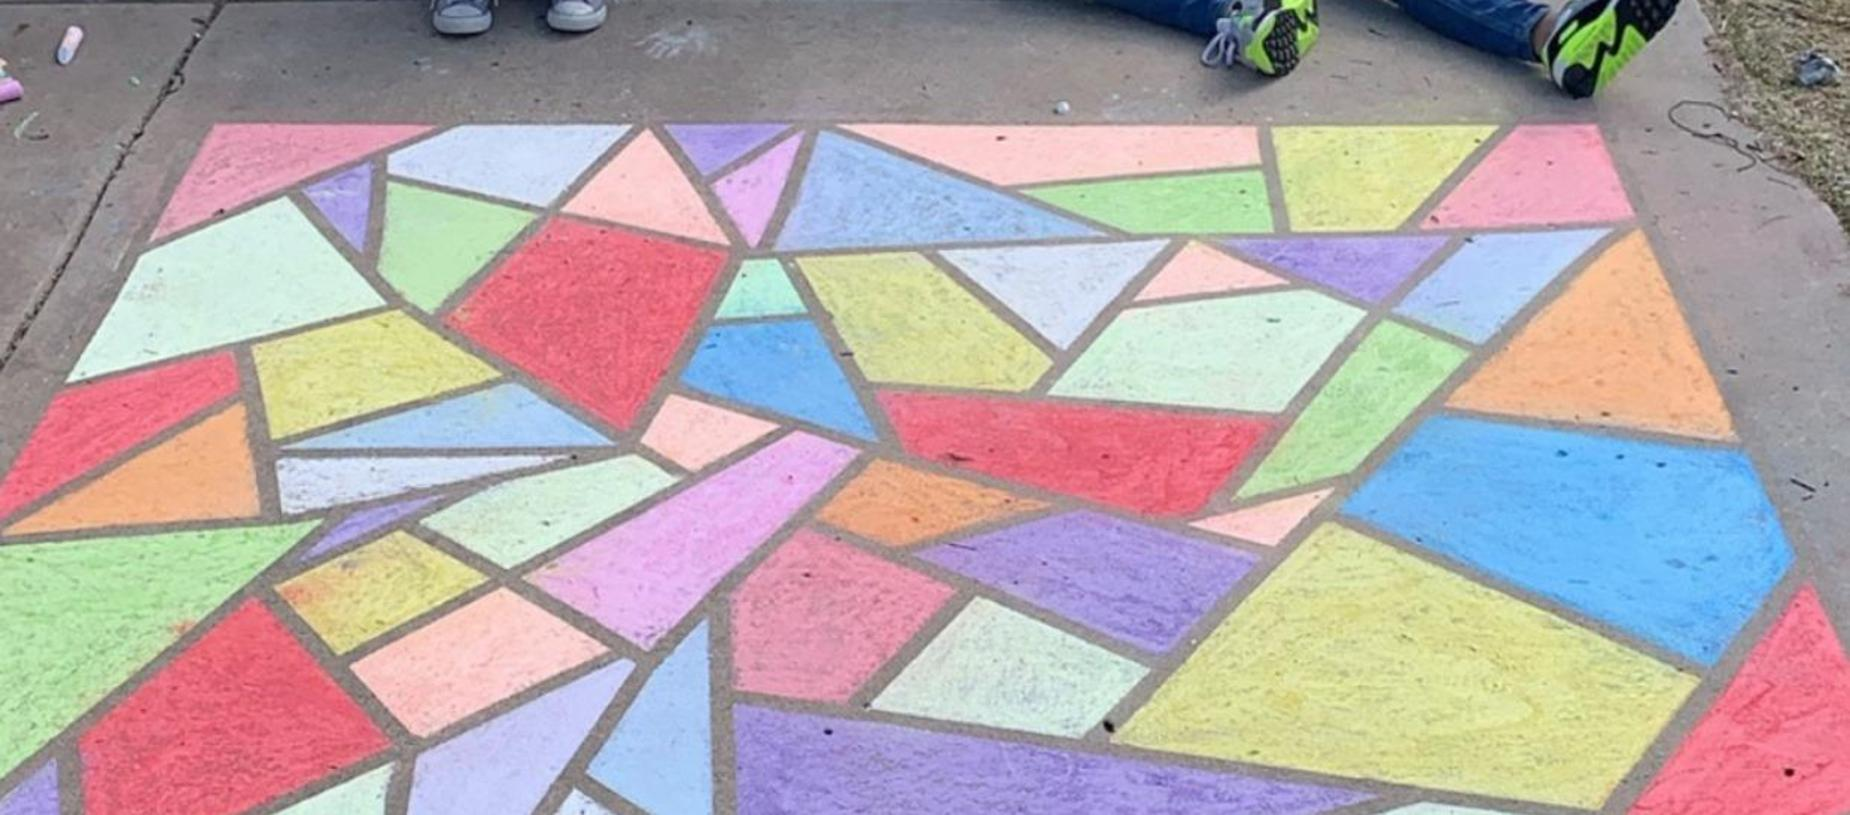 Student Sidewalk Chalk Art During Remote Learning